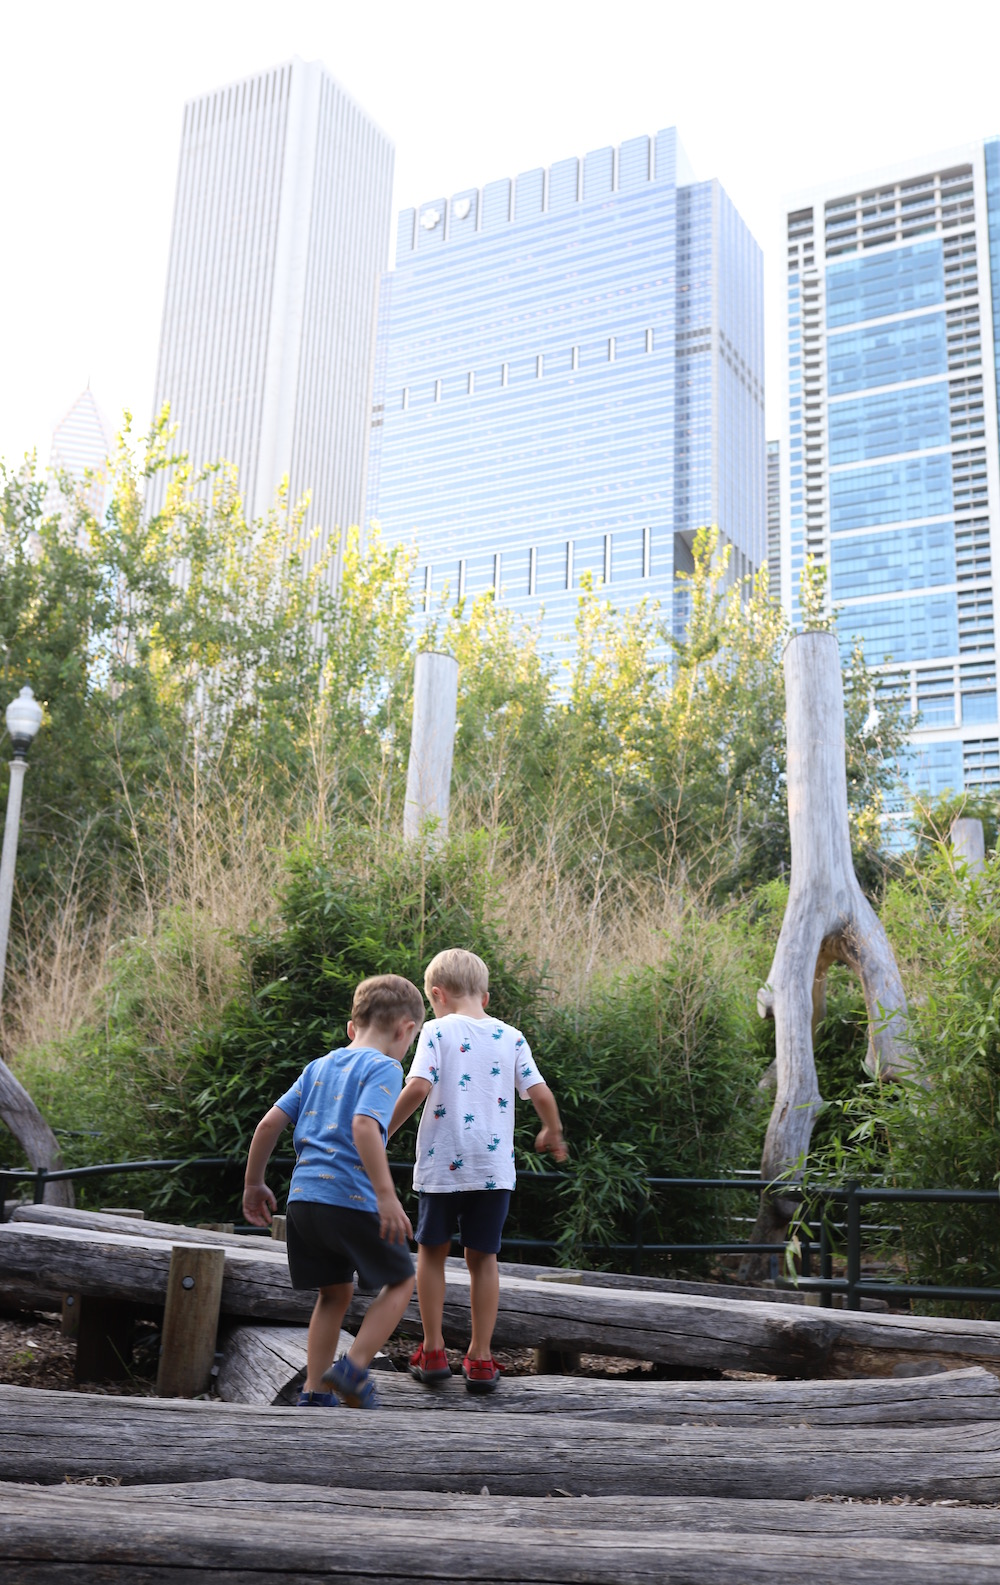 Where to Stay Downtown Chicago with Kids: Loews Loves Families - Loews Chicago Downtown Hotel is the best place to stay with kids in Chicago! from travel blogger Liz of lizrotz.com